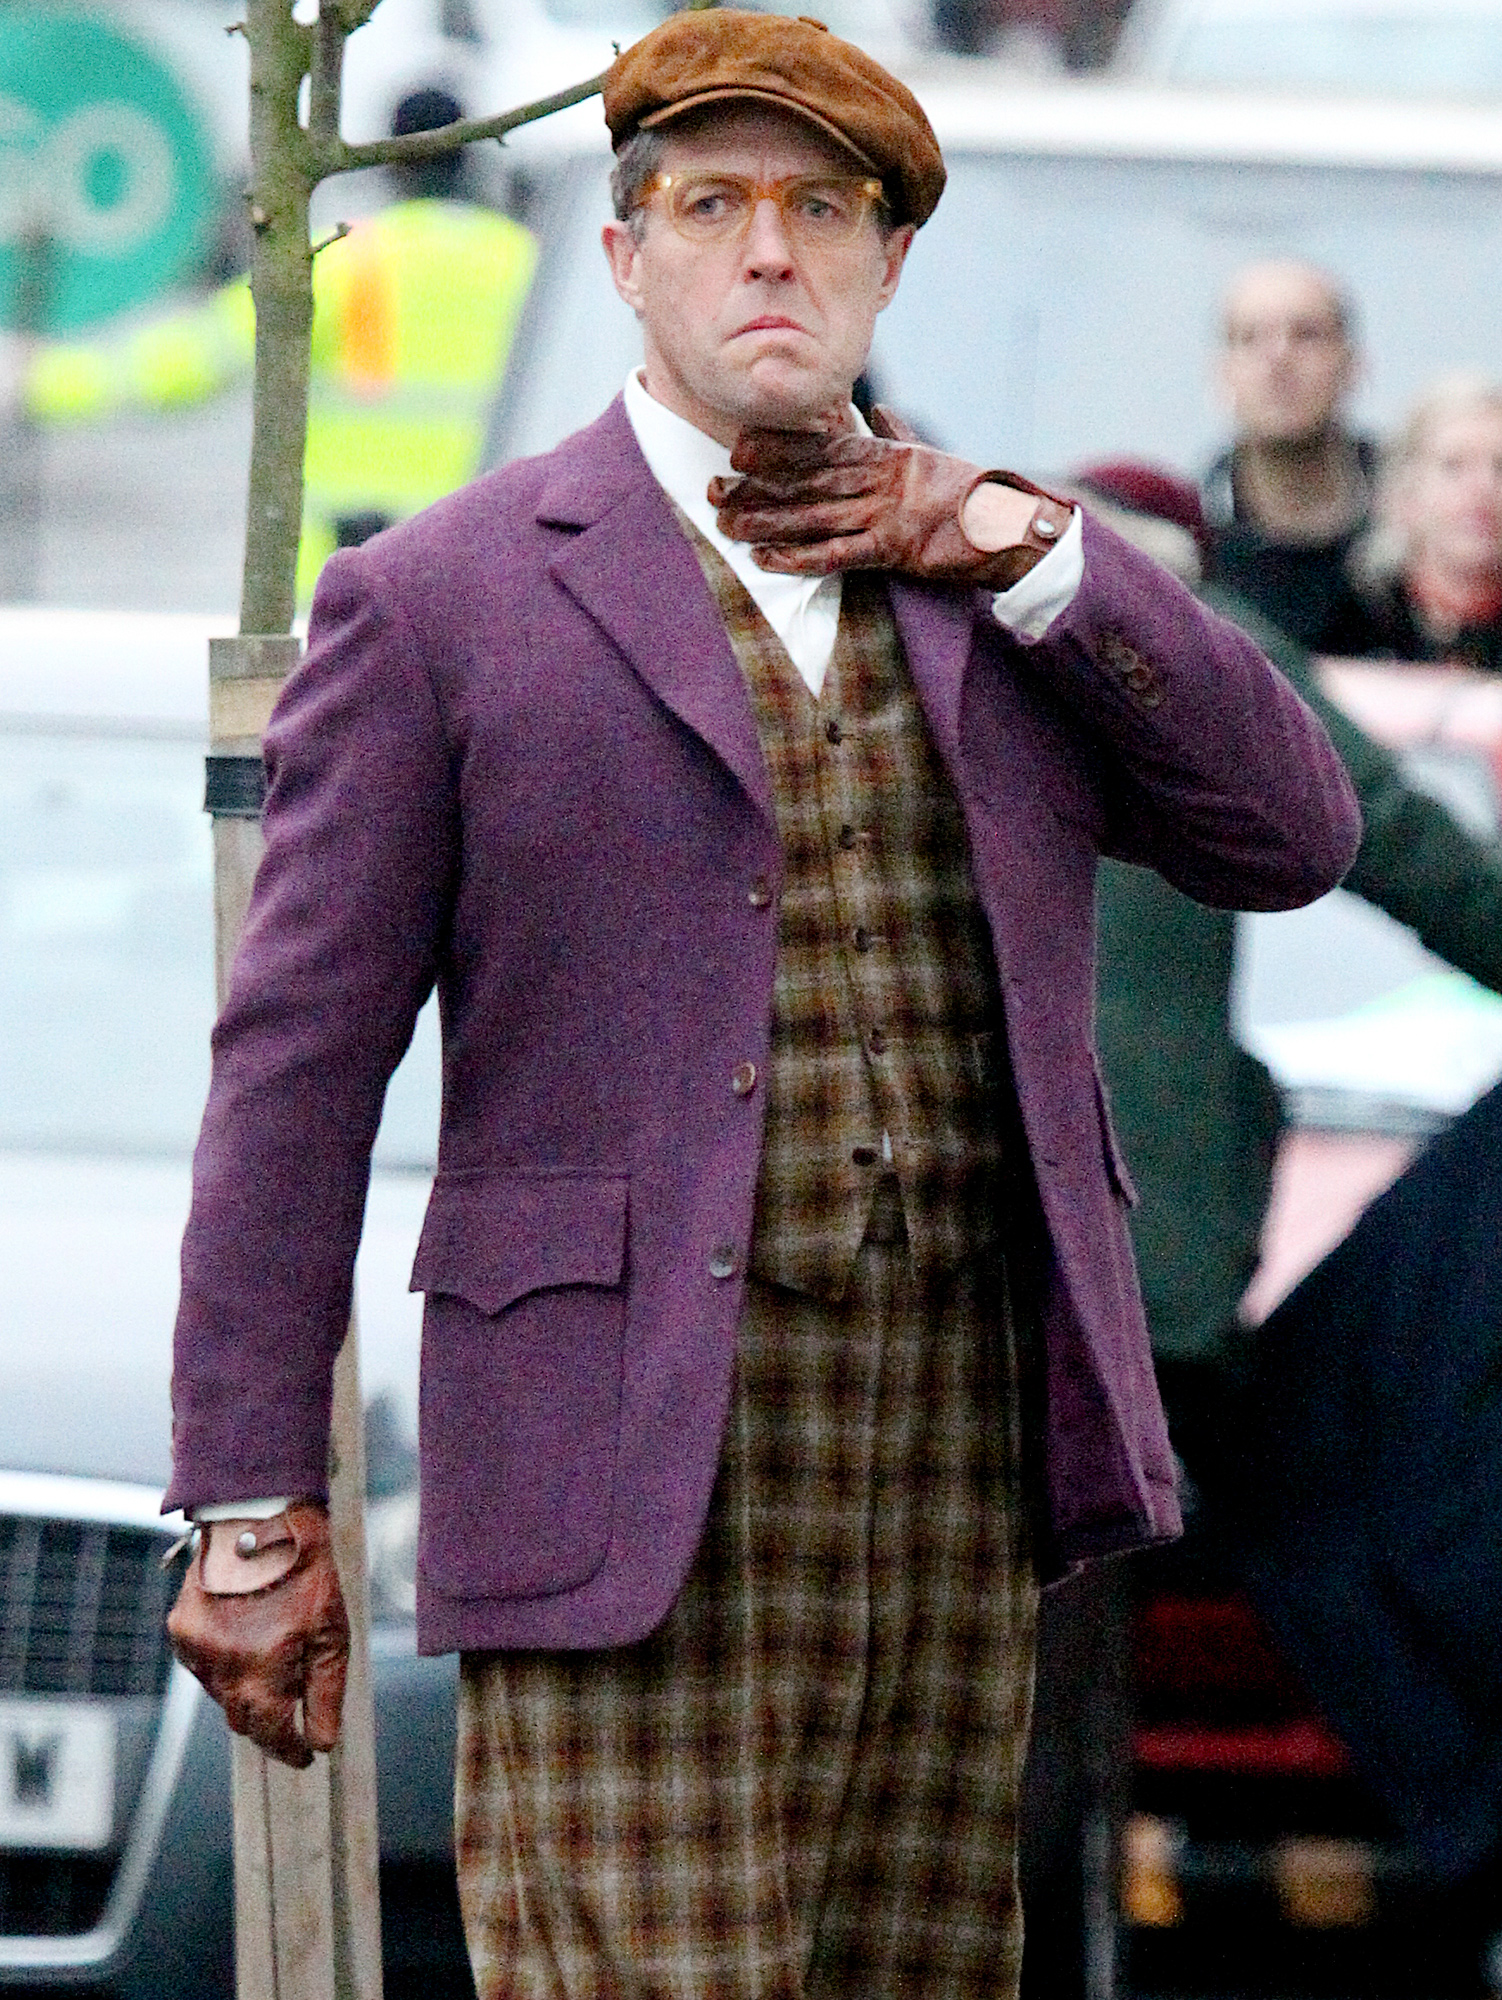 EXCLUSIVE: Hugh Grant Spotted On Set Of The Film Paddington 2.